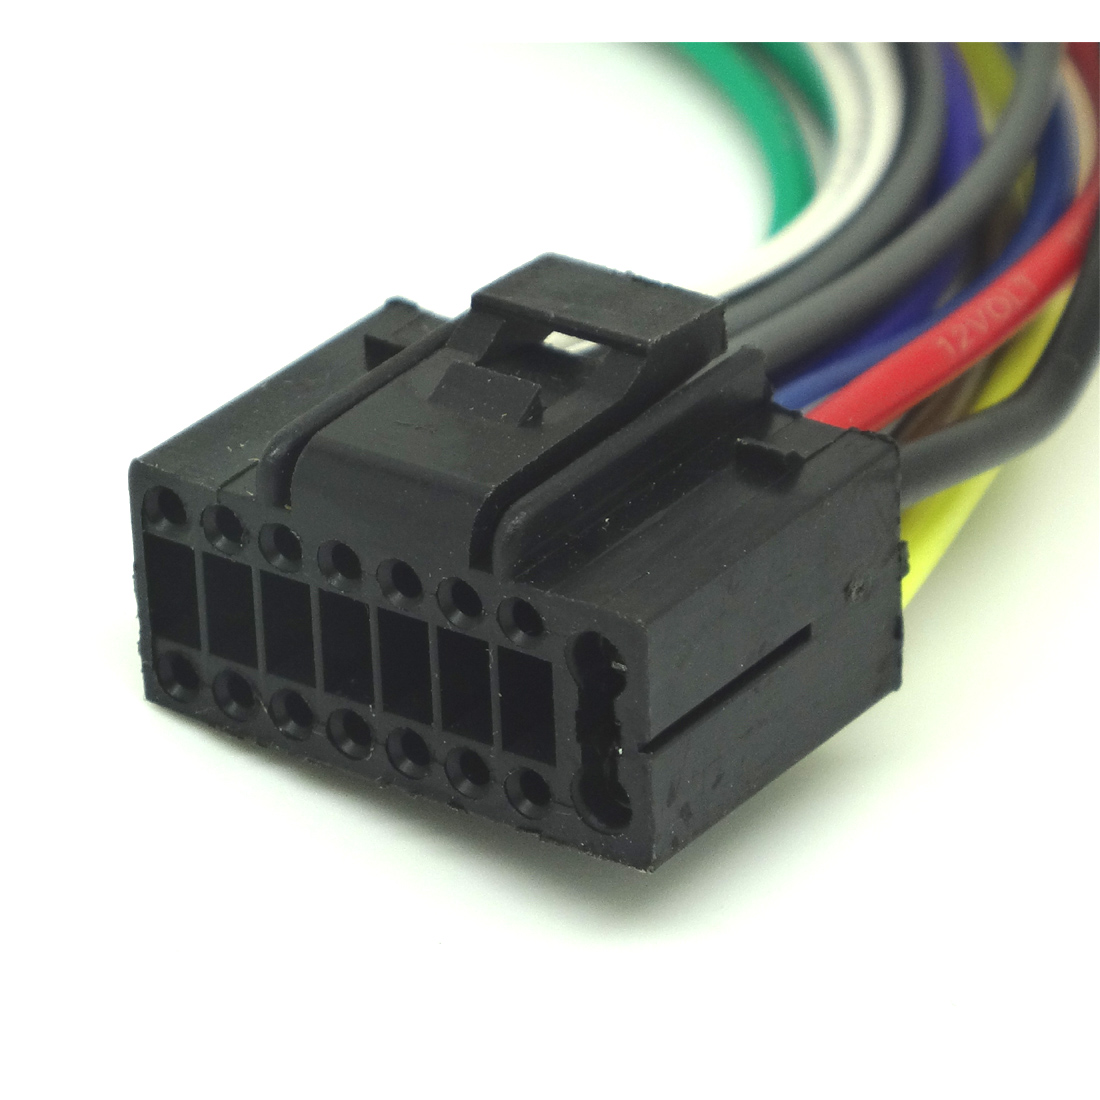 hight resolution of player 16 pin radio car audio stereo wire harness for kenwood kdcplayer 16 pin radio car